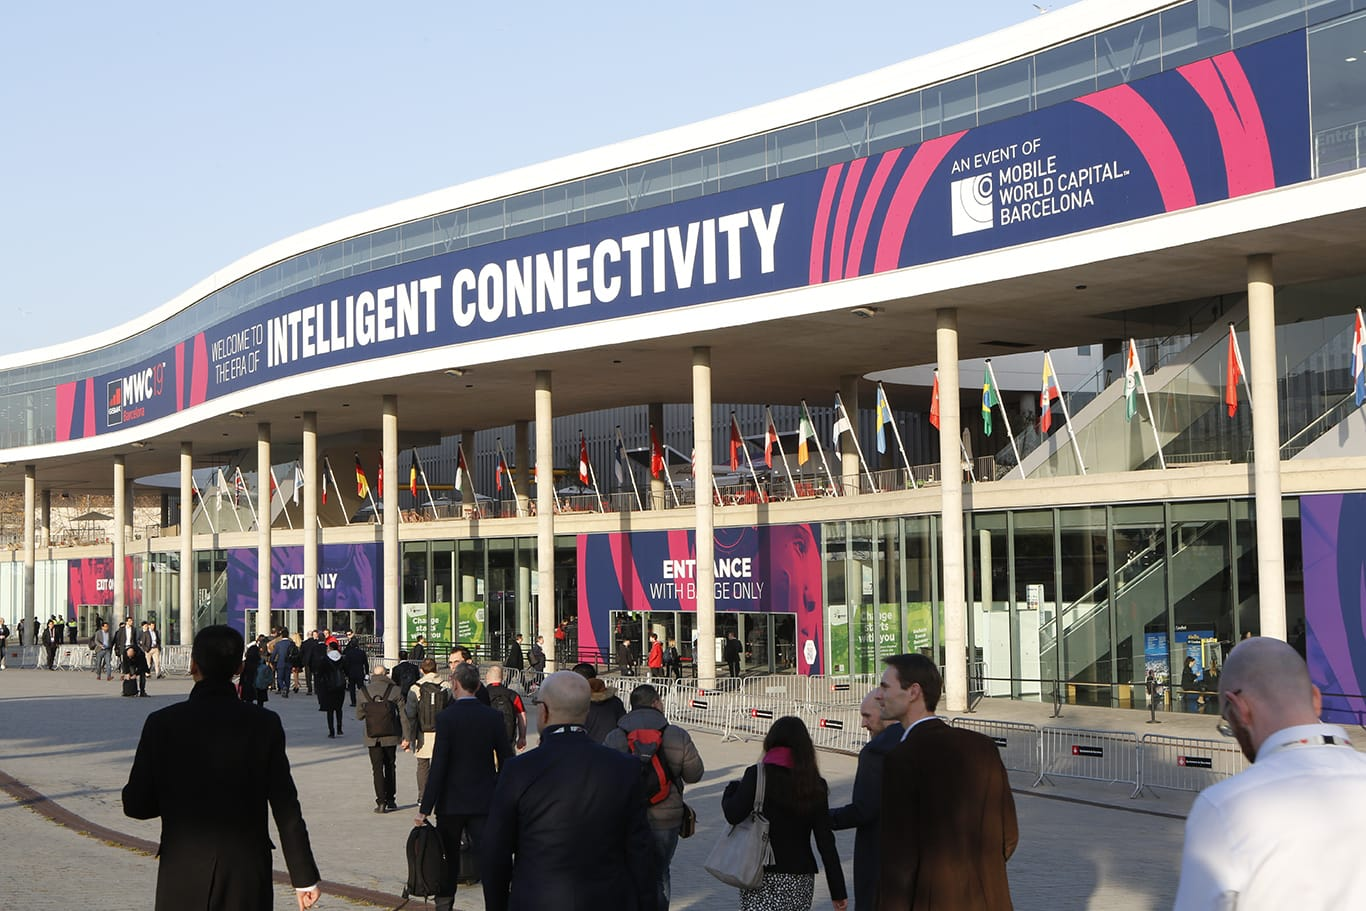 Què hem vist en el Mobile World Congress (MWC) 2019